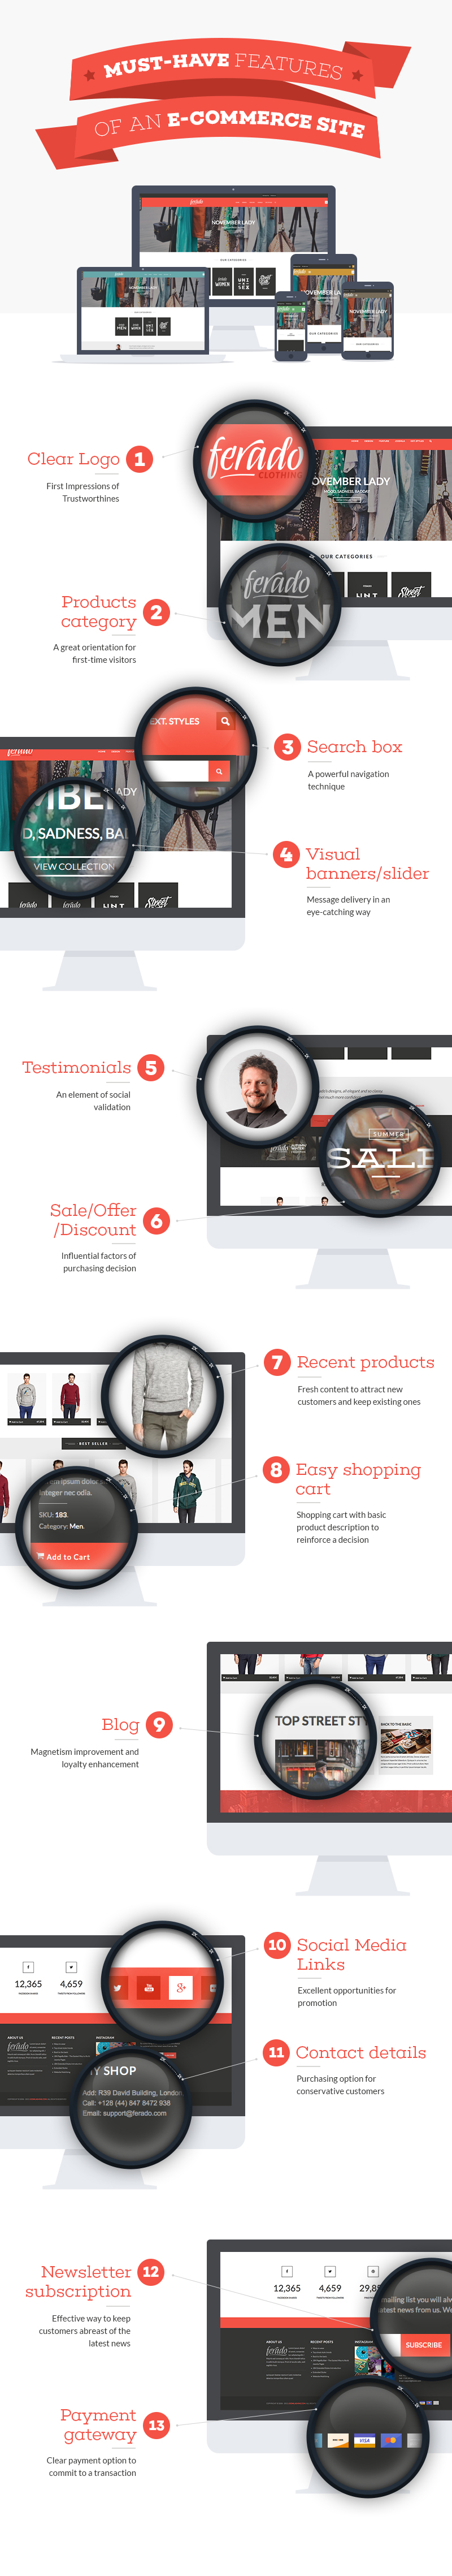 Must-have features of an e-Commerce site